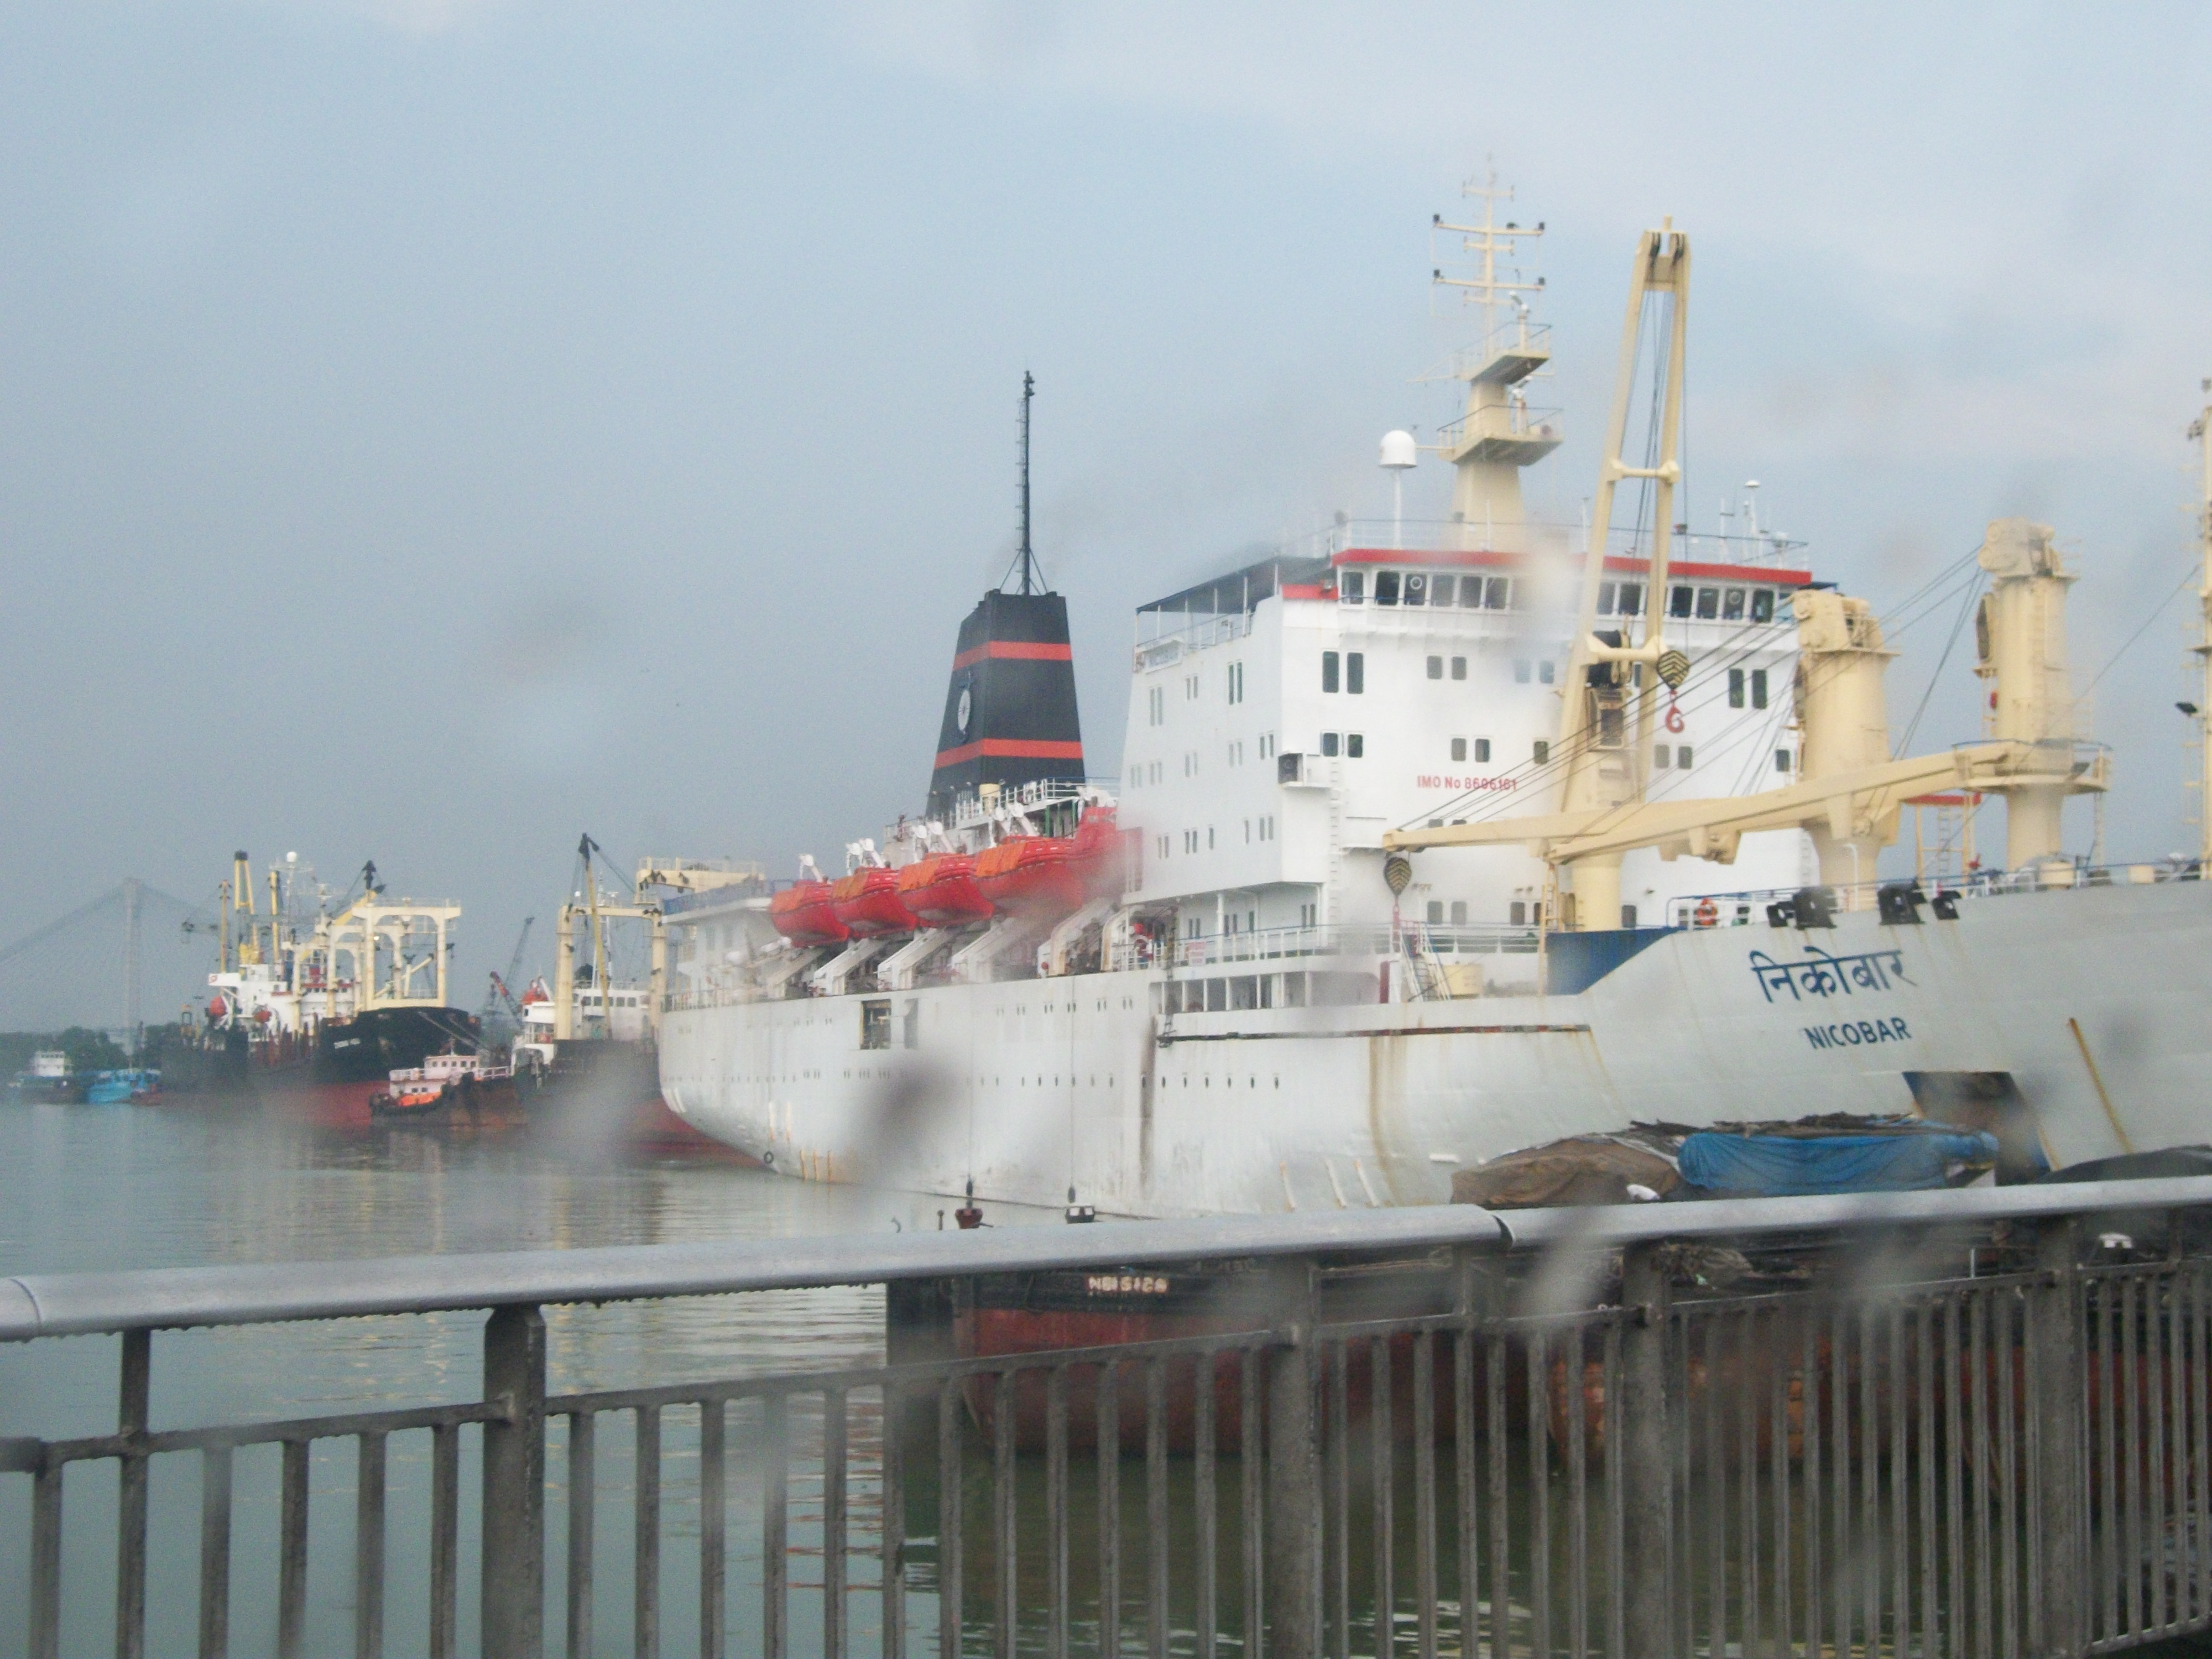 A Nicobar ship at Kolkata's Harbour, I felt like hoping onto it to reach Nicobar early